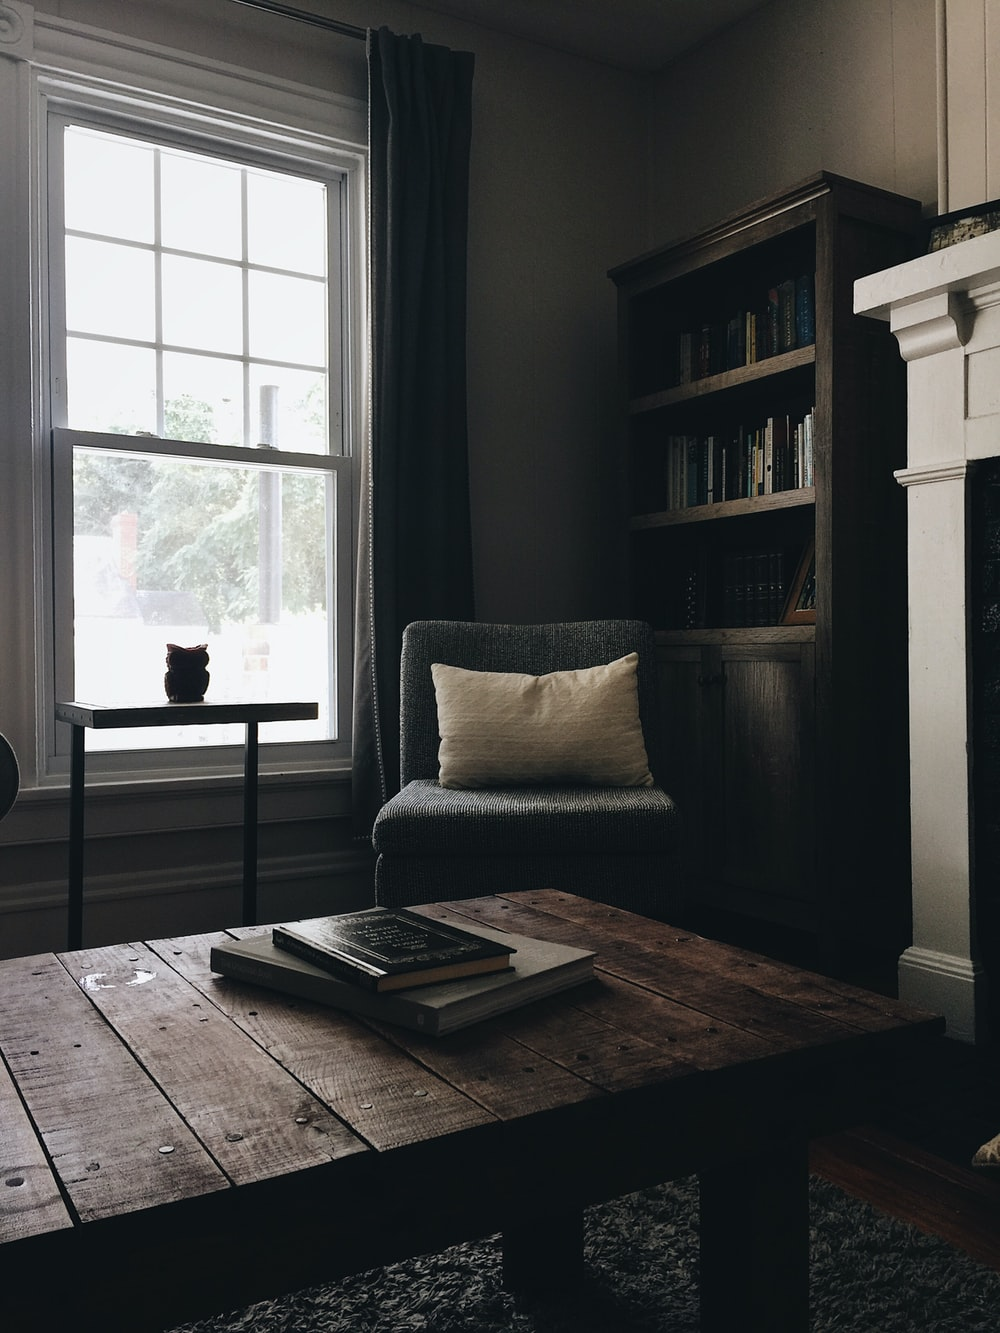 gray throw pillow on black chair by the window